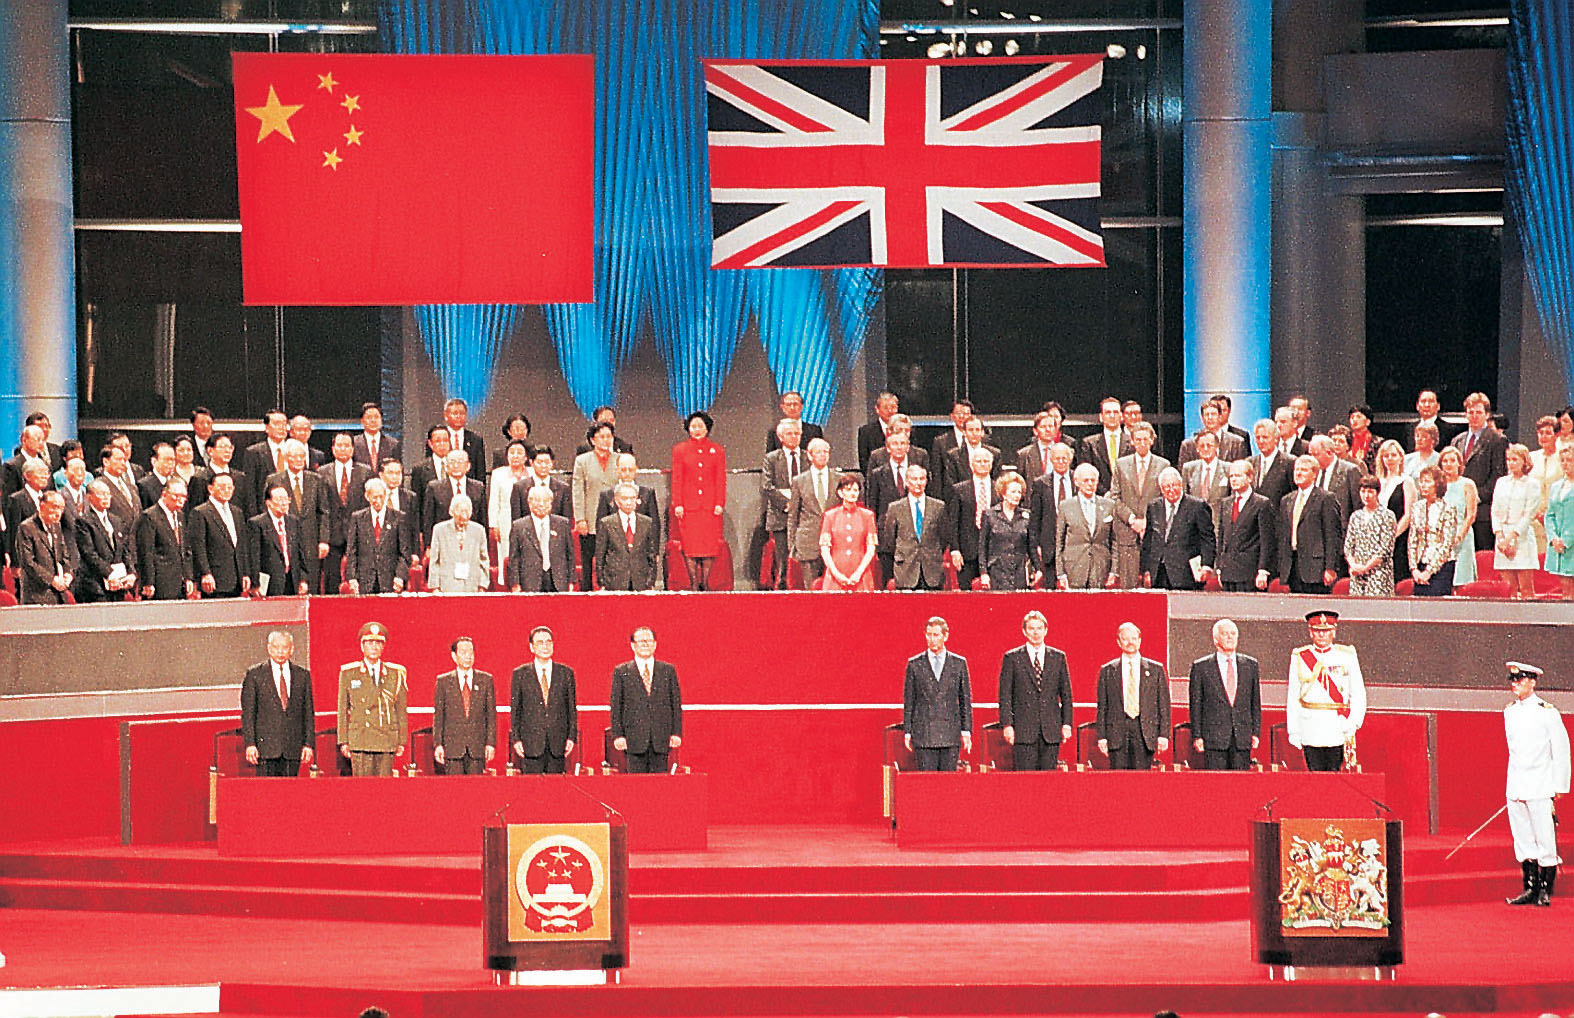 The Day The Union Jack Was Lowered: Remembering the Hong Kong Handover Twenty Years Later